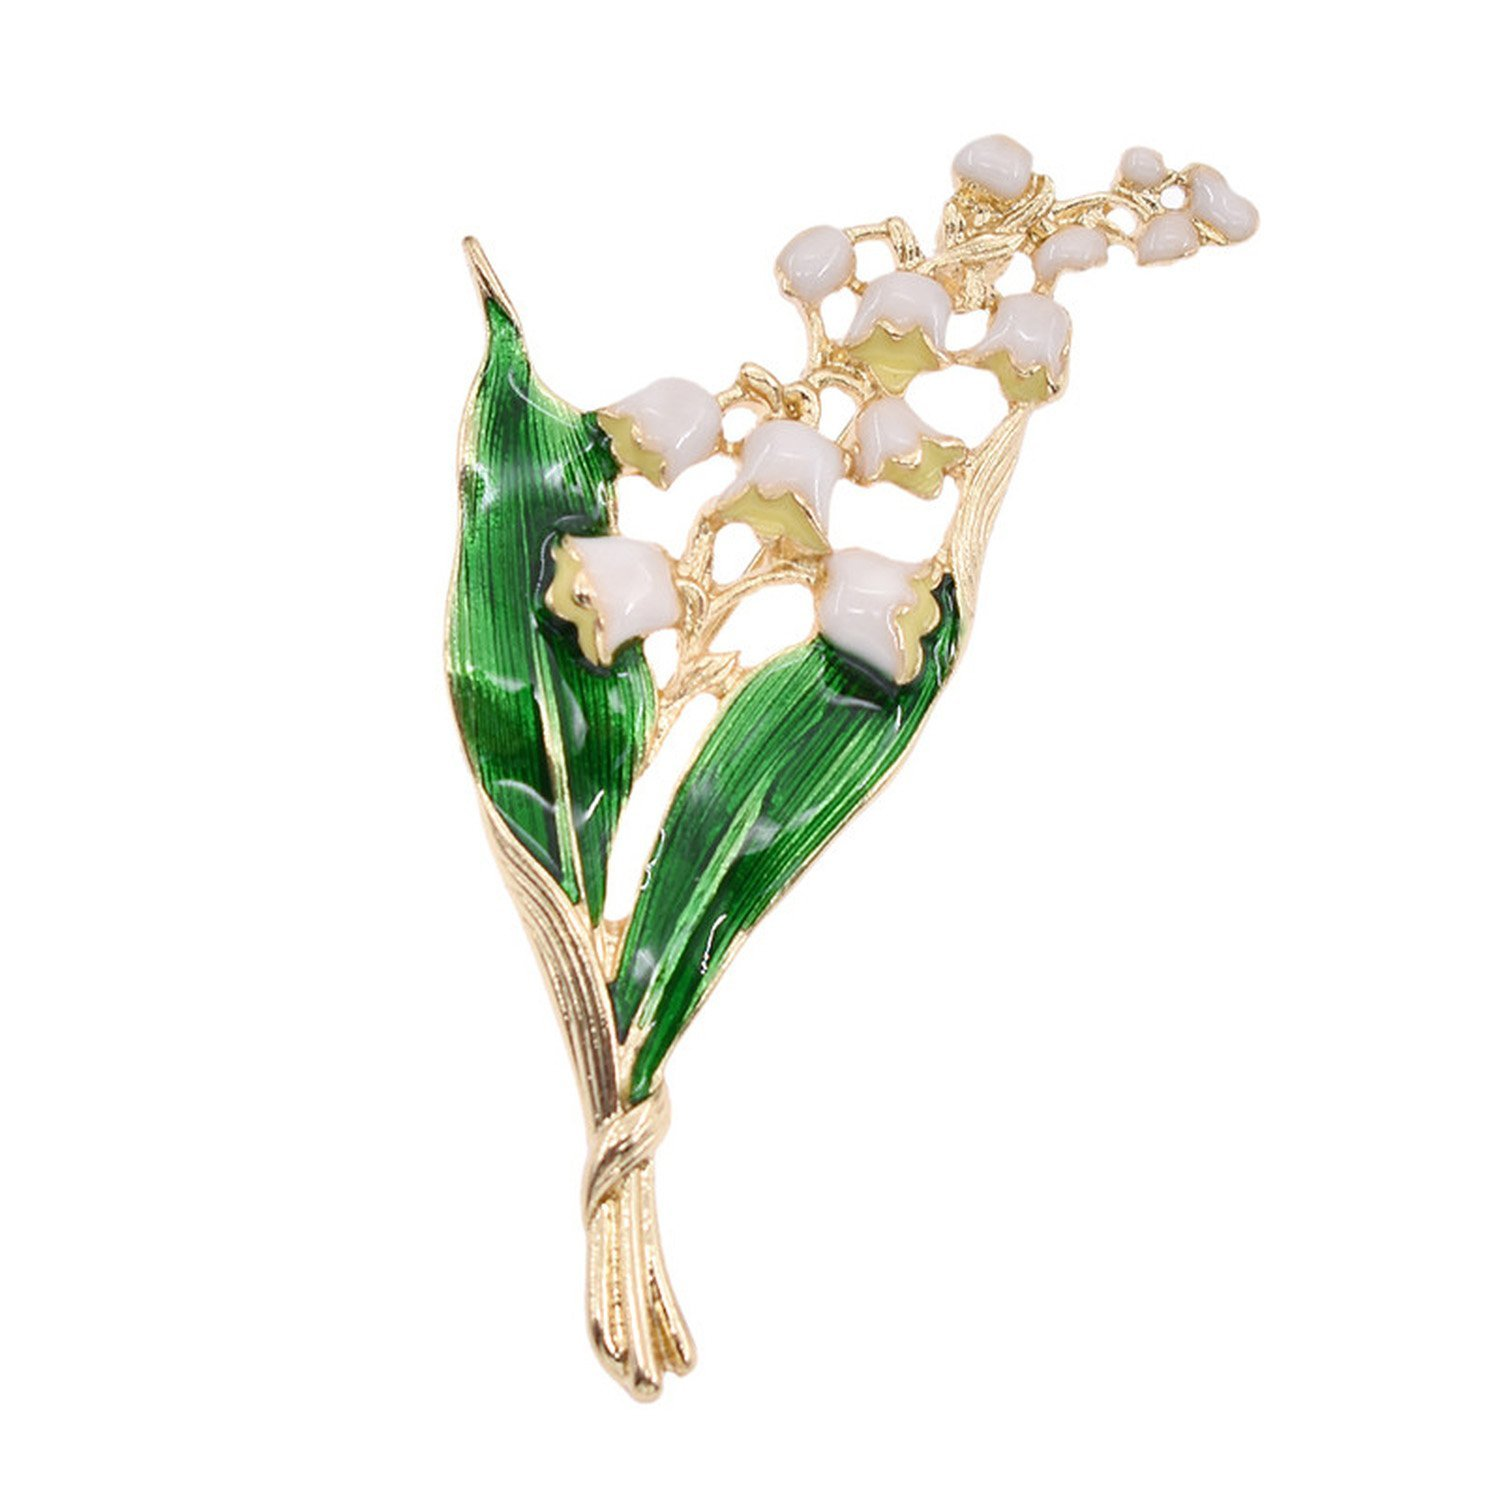 Trendy Alloy Enamel White Floral Leaf Brooch Lily Of Valley Gold Color Brooch Pin Jewelry For Women by Baolustre (Image #1)